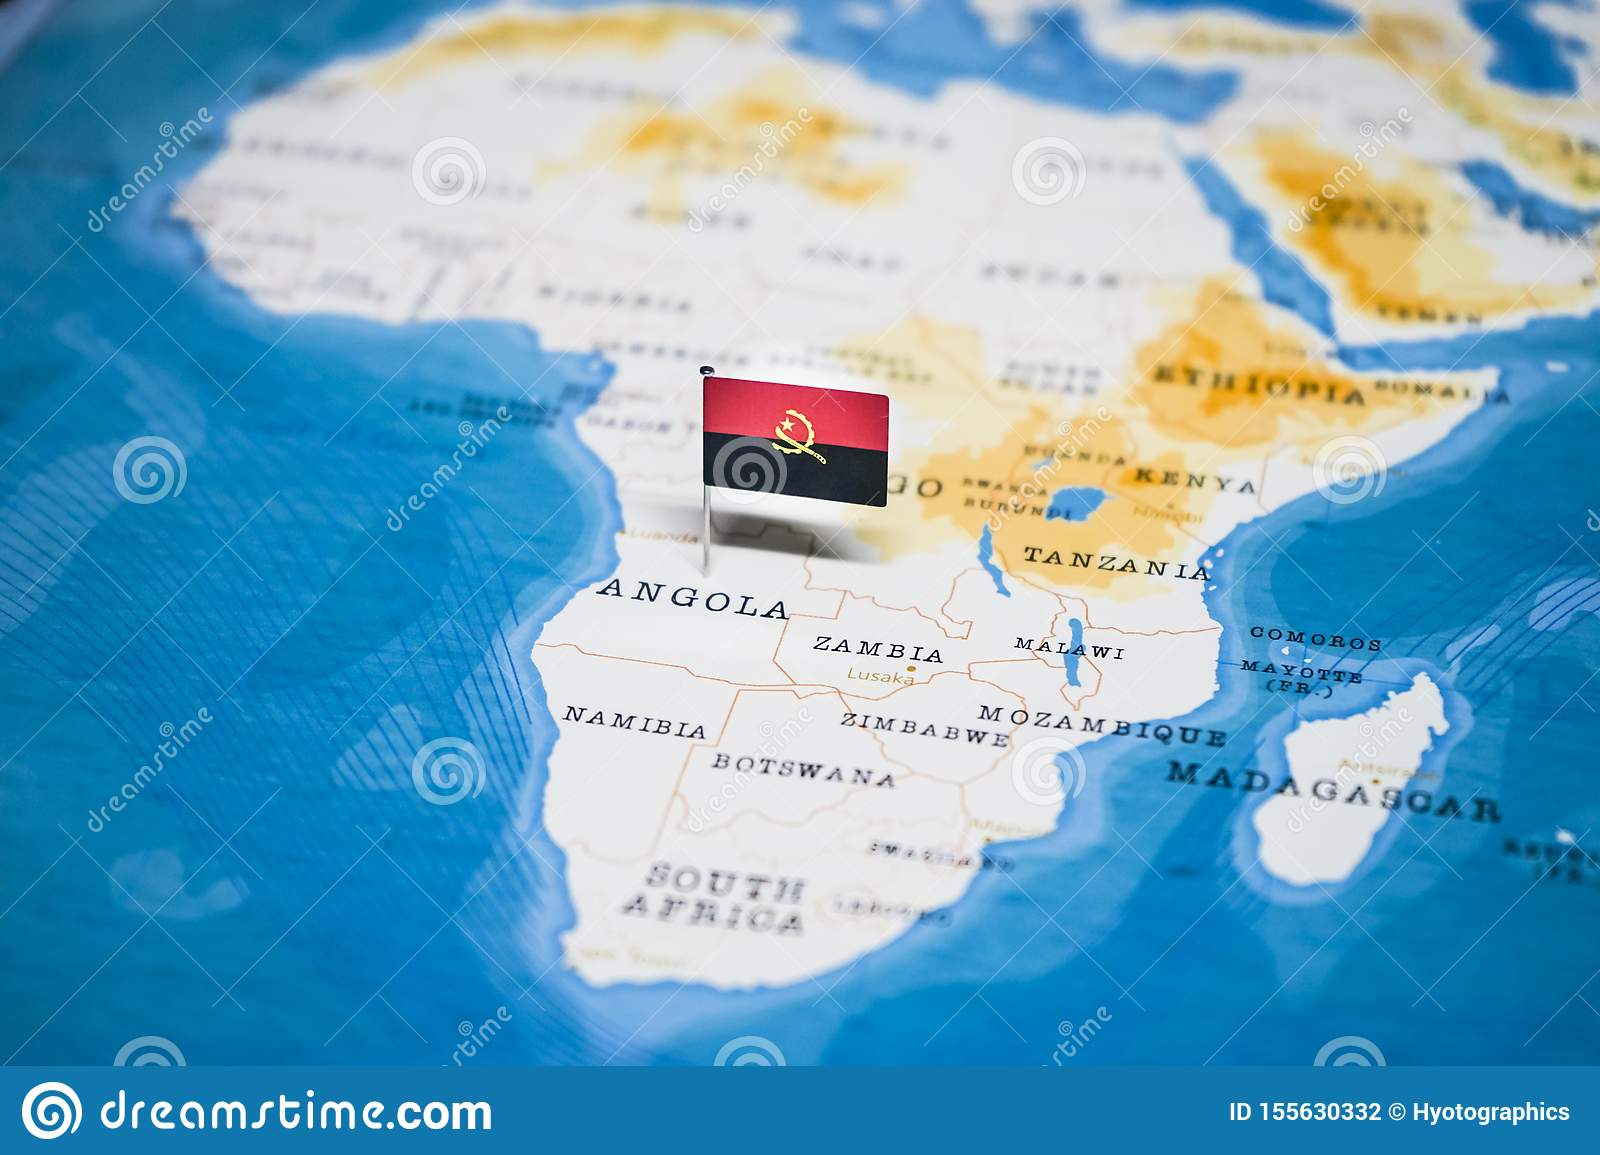 Picture of: 290 Angola Map Photos Free Royalty Free Stock Photos From Dreamstime